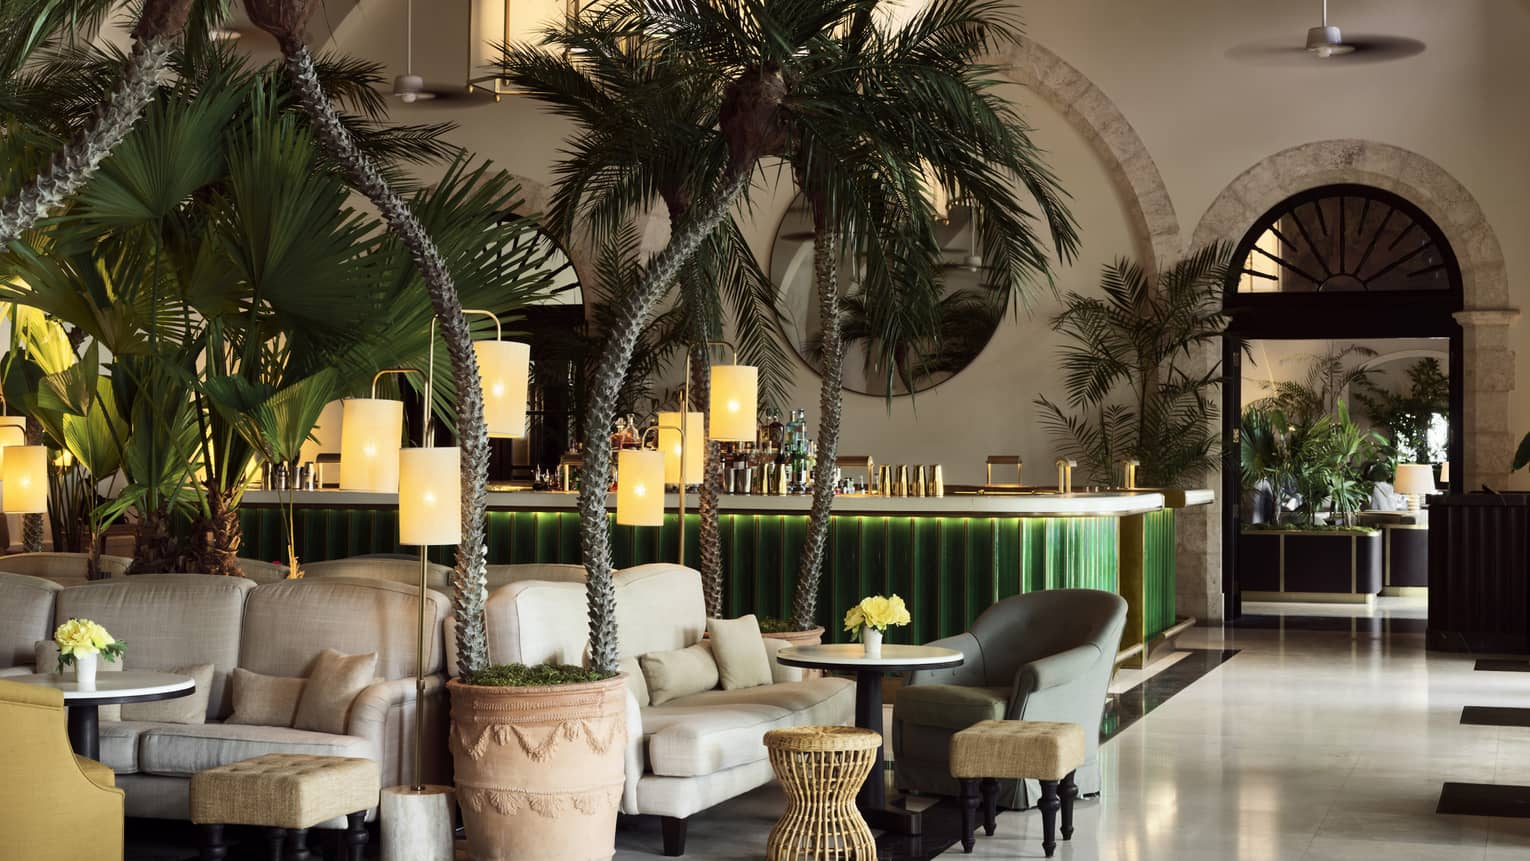 Indoor lounge with palm trees, white upholstered arm chairs, green bar in the background